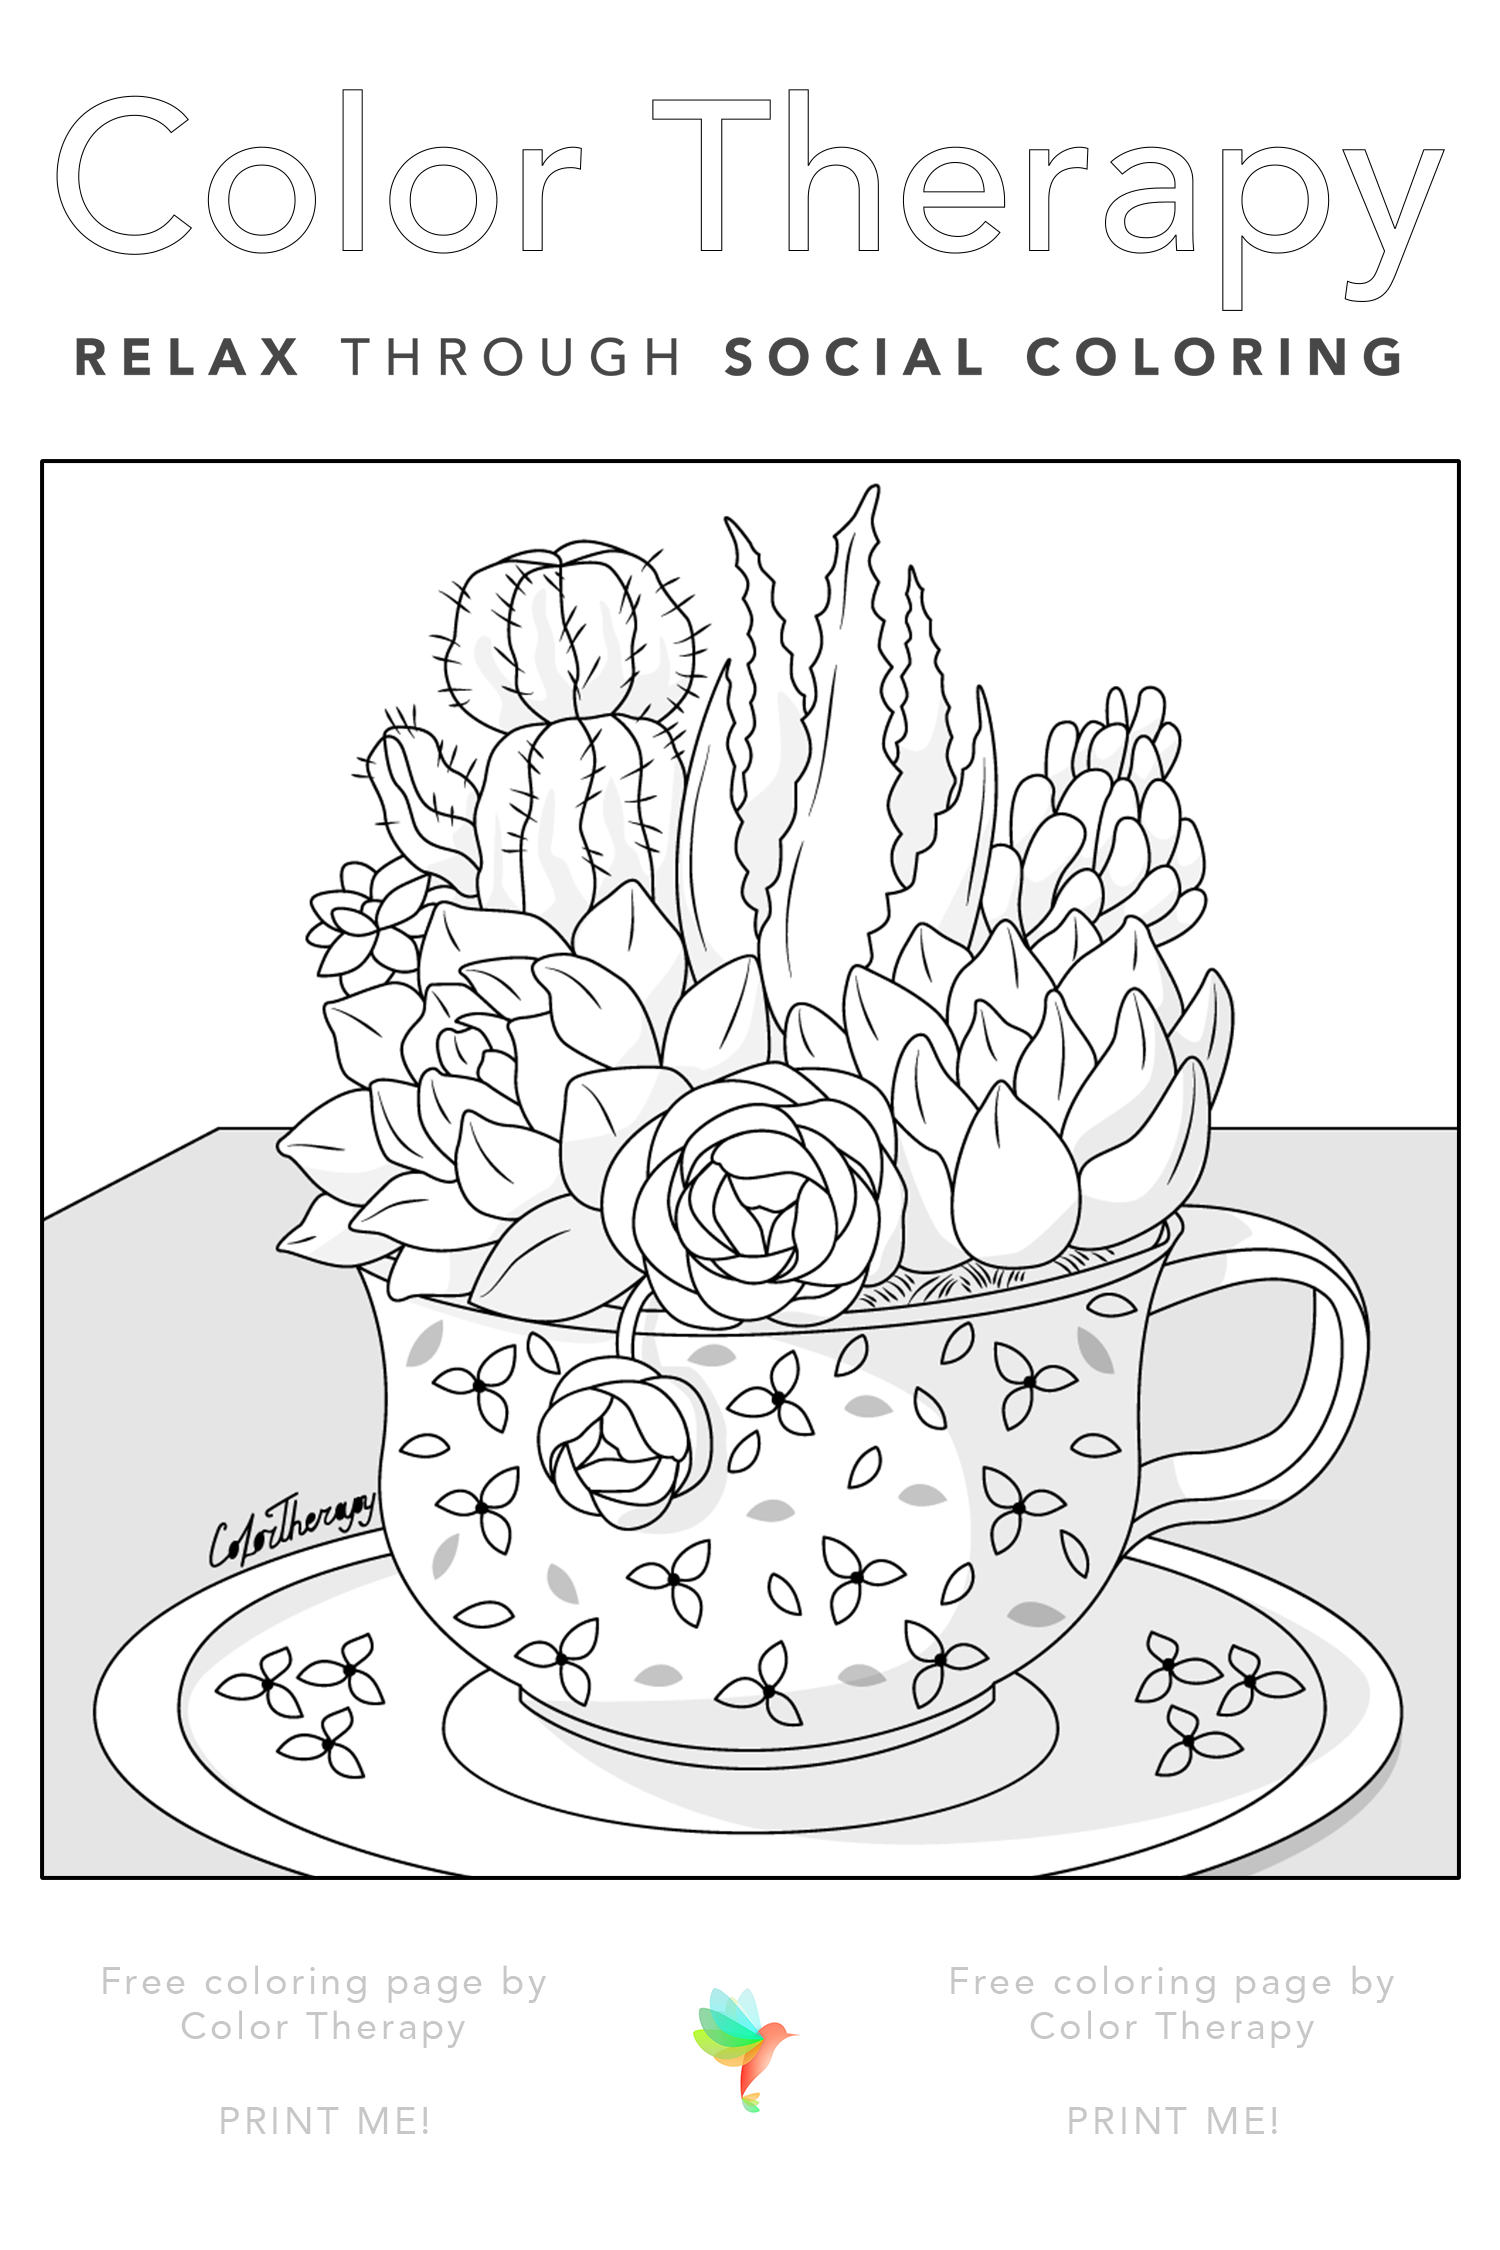 Color Therapy Gift Of The Day Free Coloring Page Coloring Pages Free Coloring Pages Color Therapy